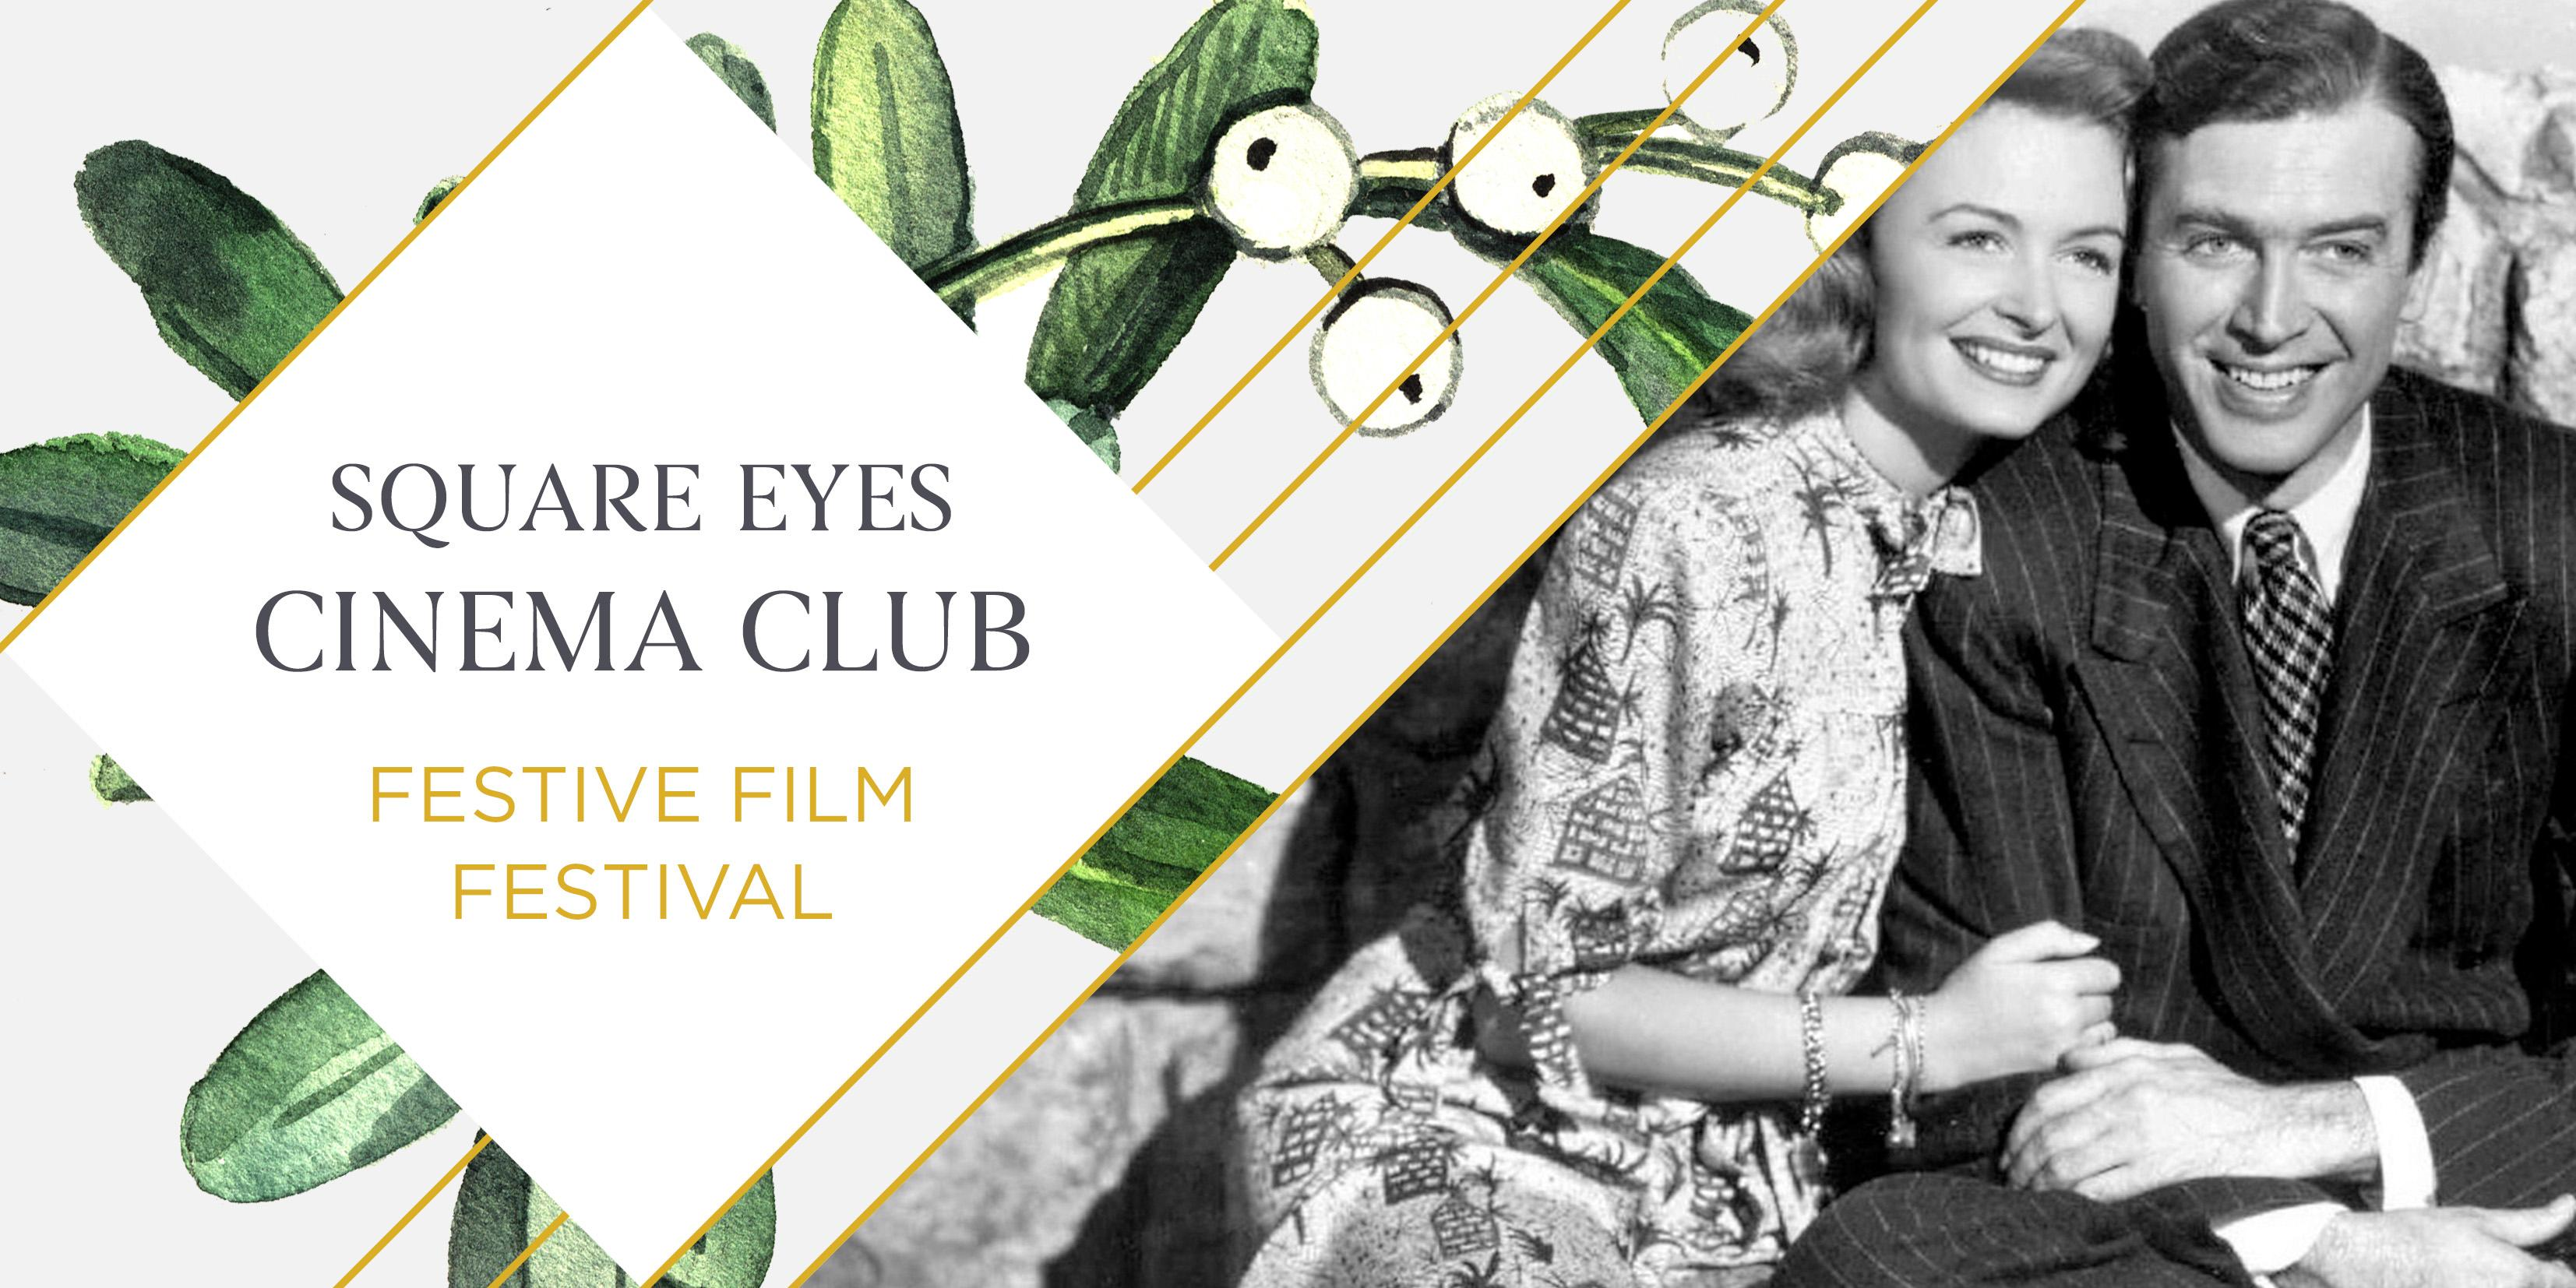 SOLD OUT - Festive Square Eyes Cinema Club - It's A Wonderful Life